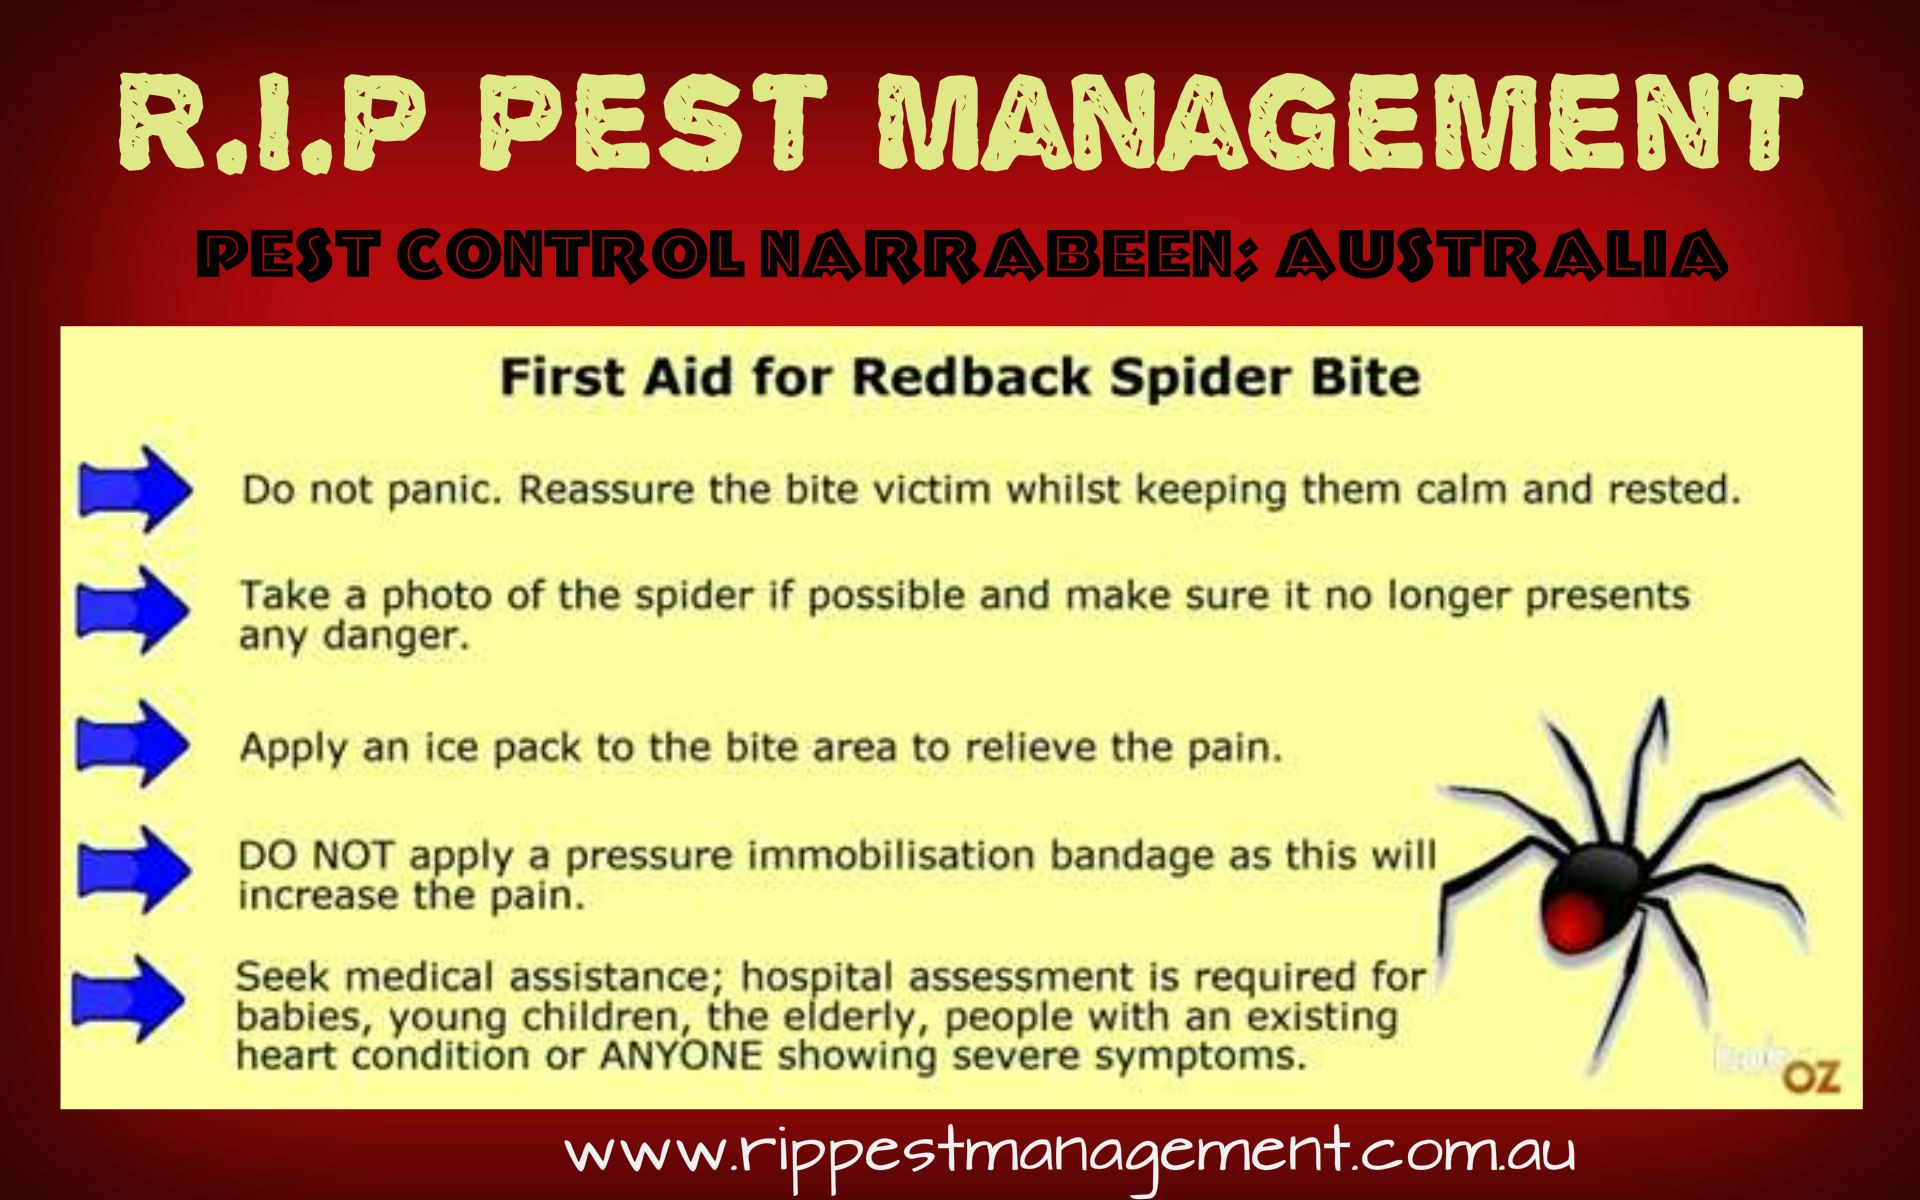 First Aid tips for Redback Spider Bite